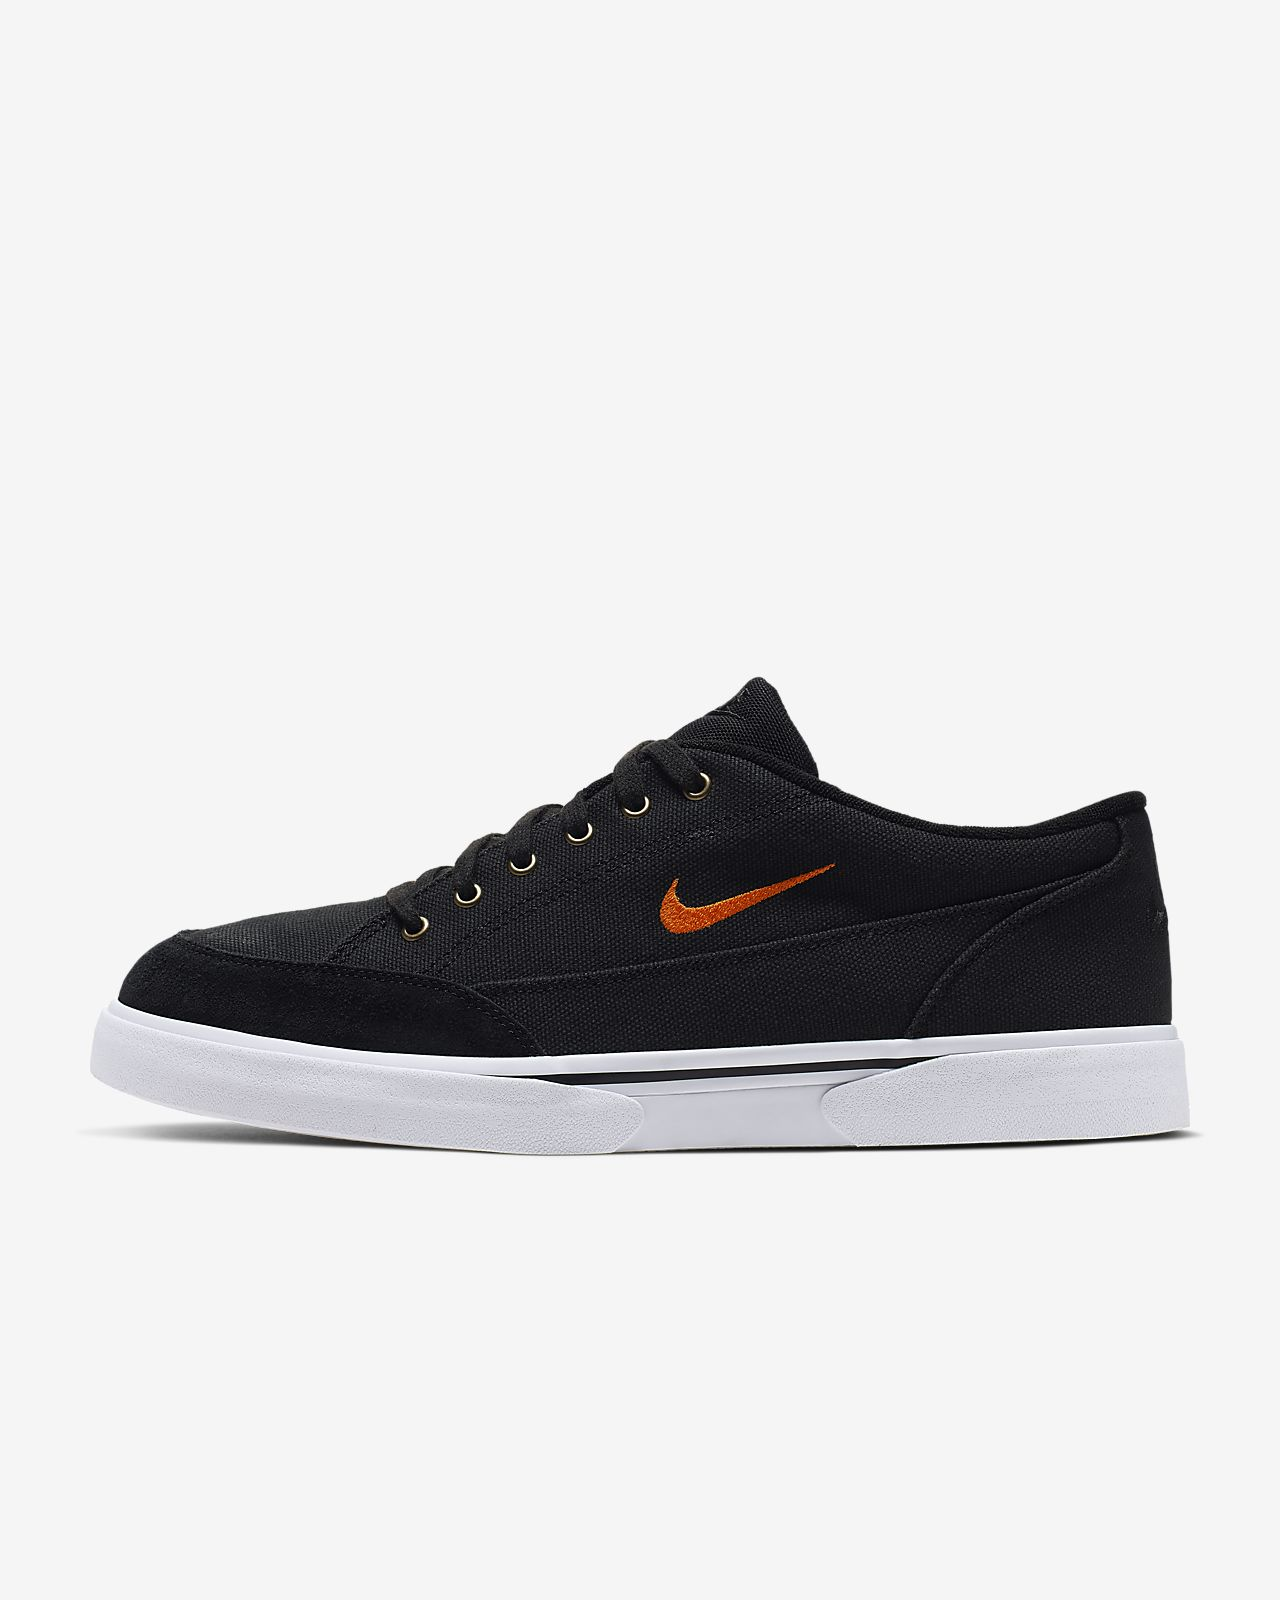 Nike GTS '16 TXT Men's Shoe